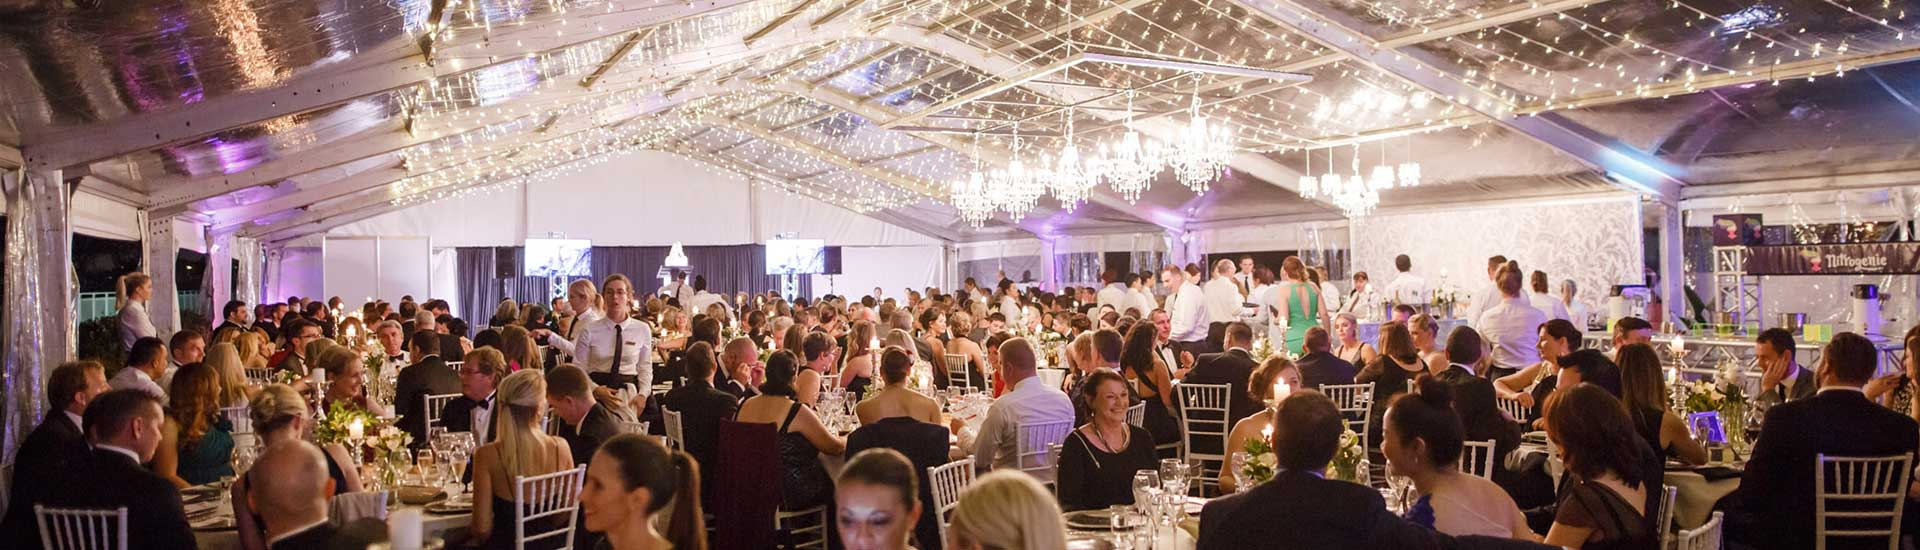 Brisbane Racing Club offers beautiful formal settings for your next awards night, gala dinner or anything in-between